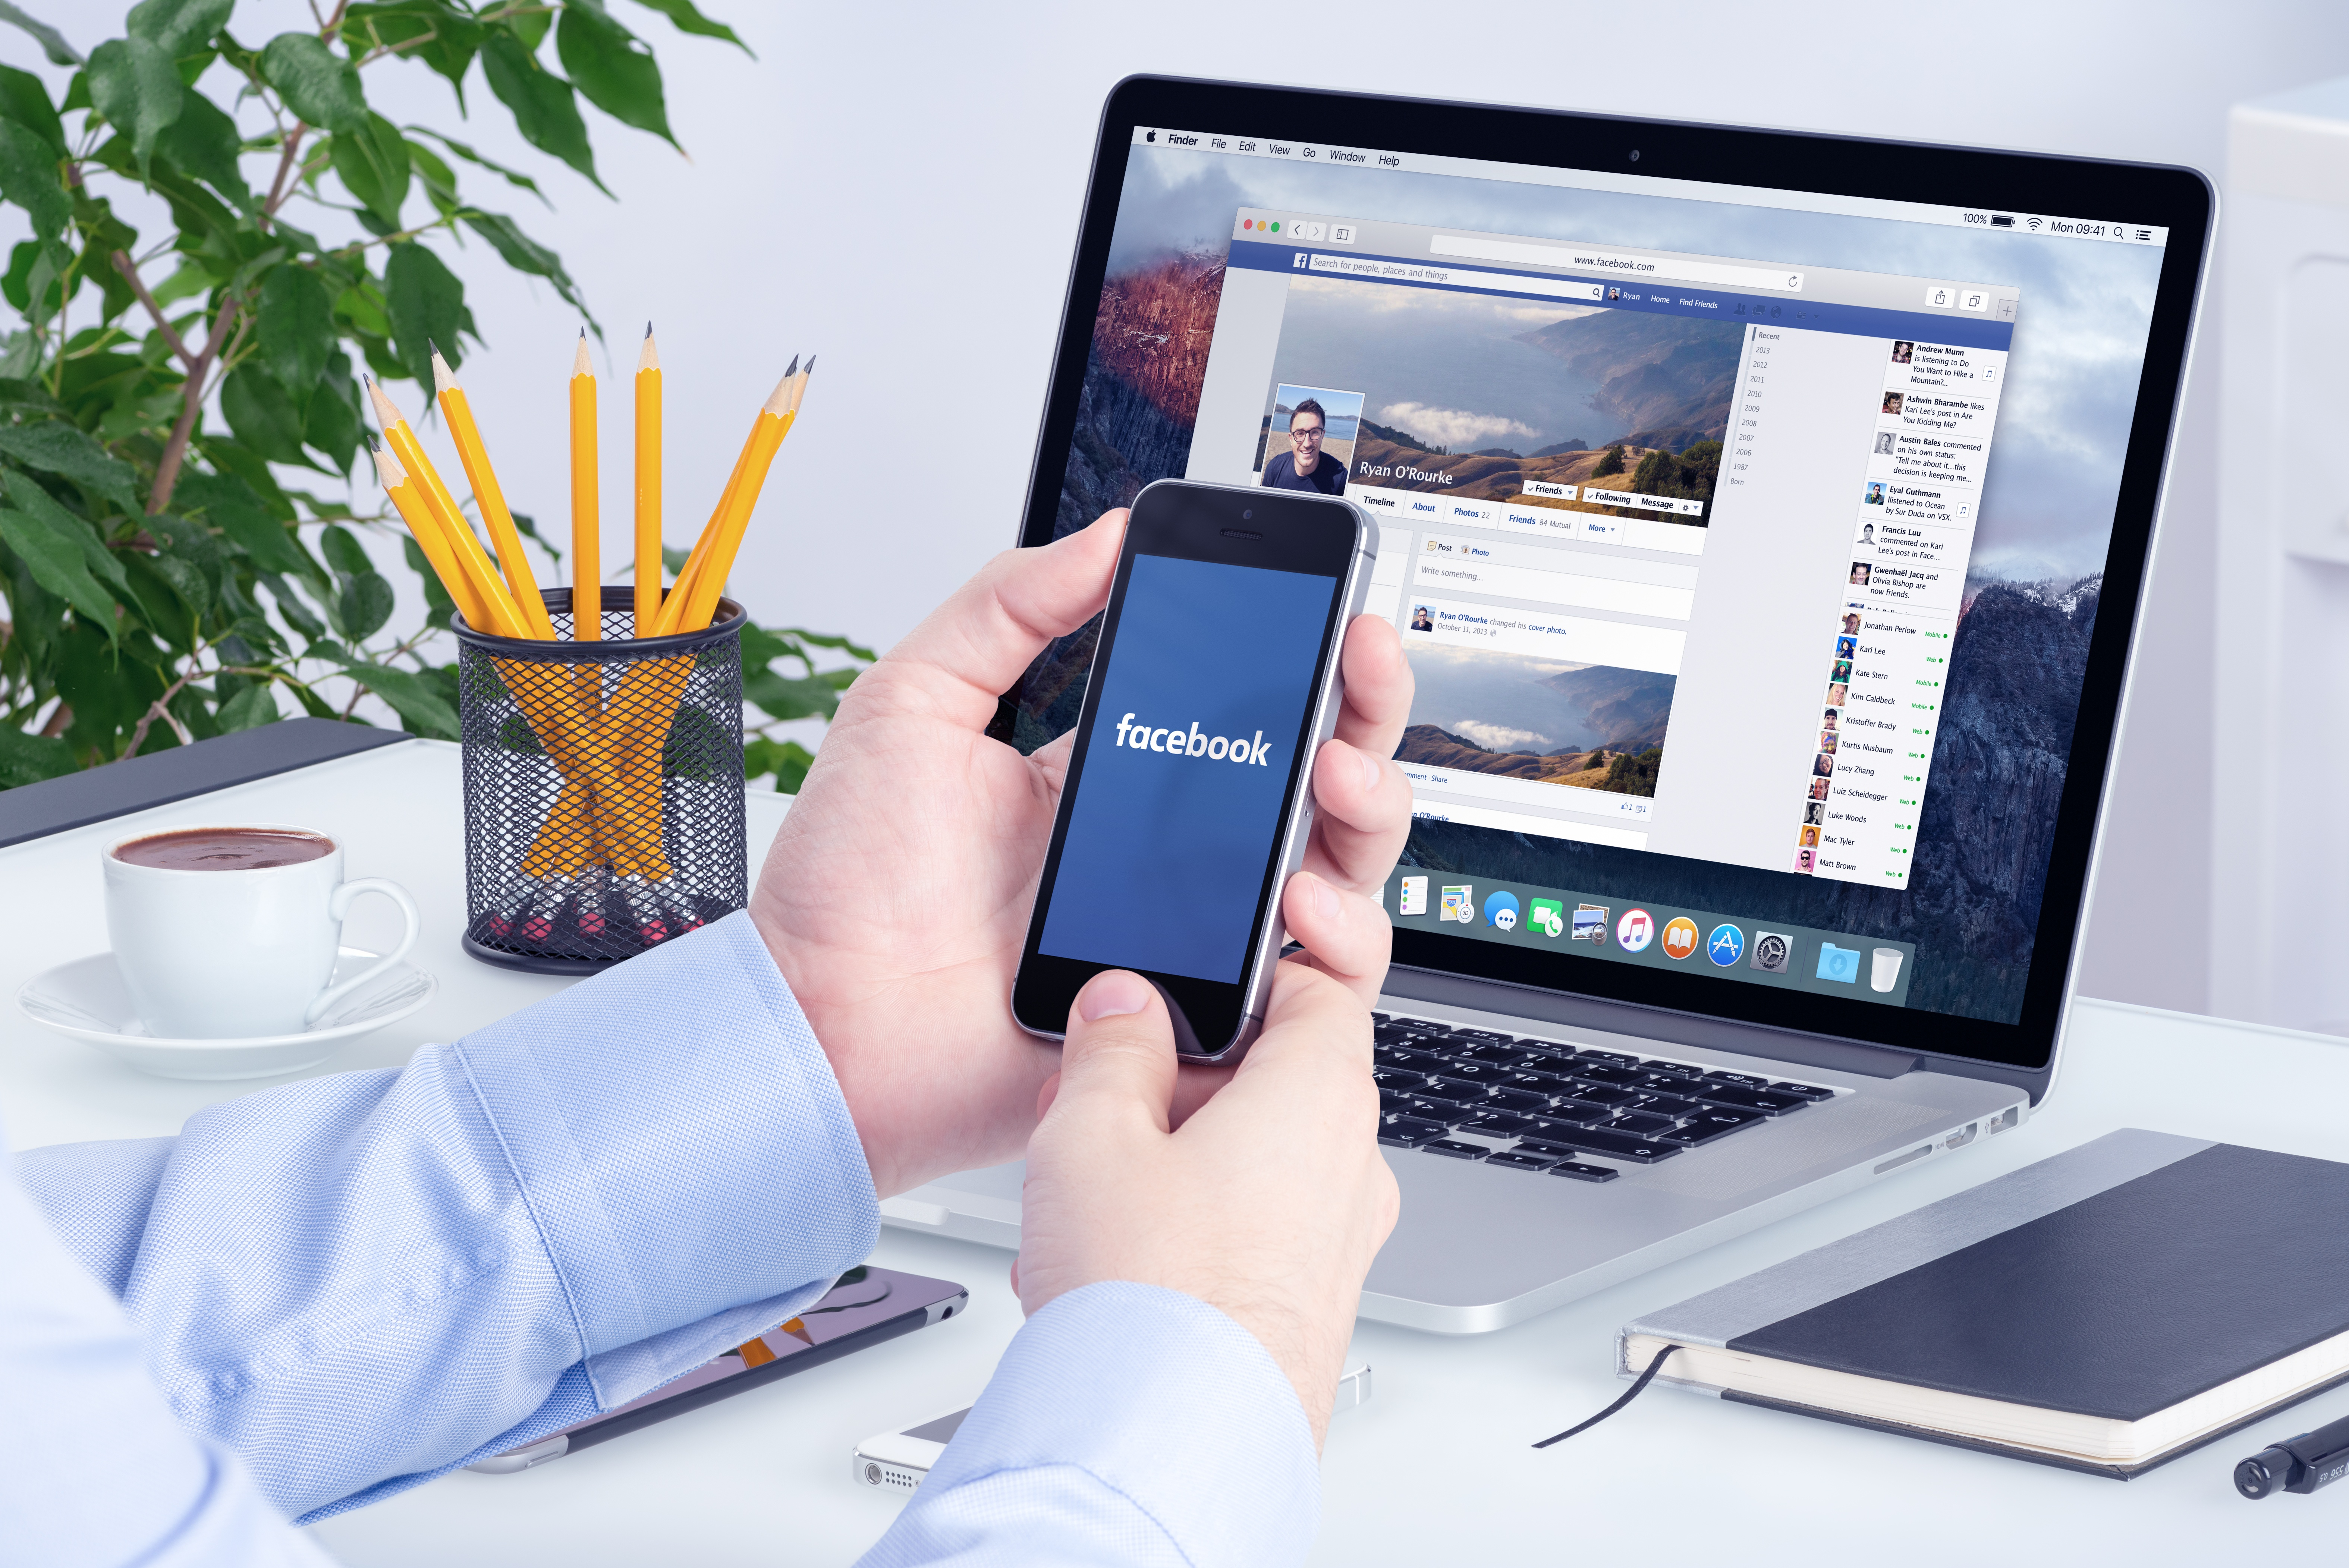 bigstock-Facebook-App-On-The-Apple-Ipho-95499020